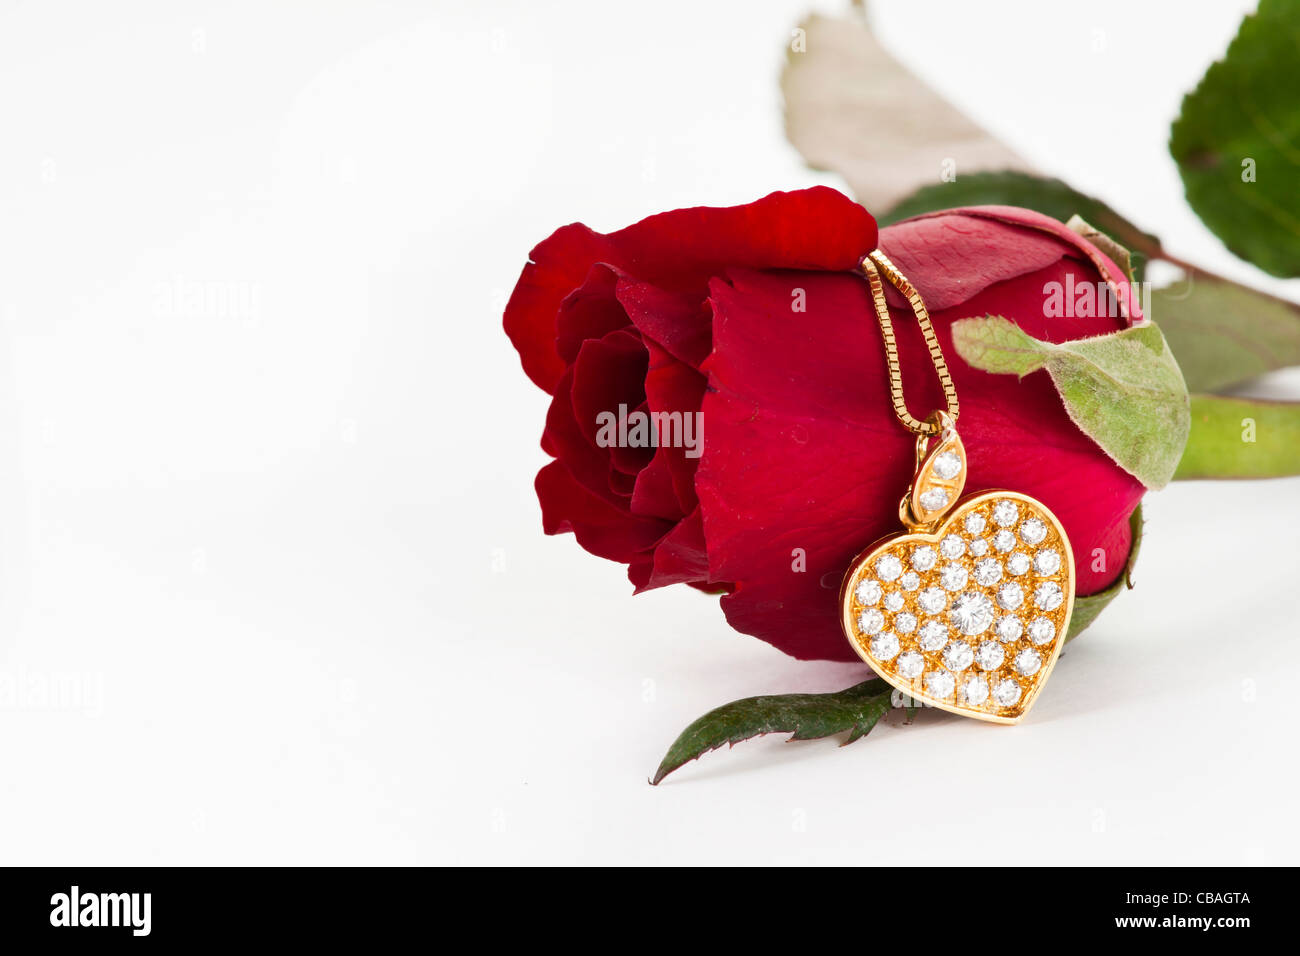 Heart pendant with diamond and red rose on white background stock heart pendant with diamond and red rose on white background mozeypictures Choice Image